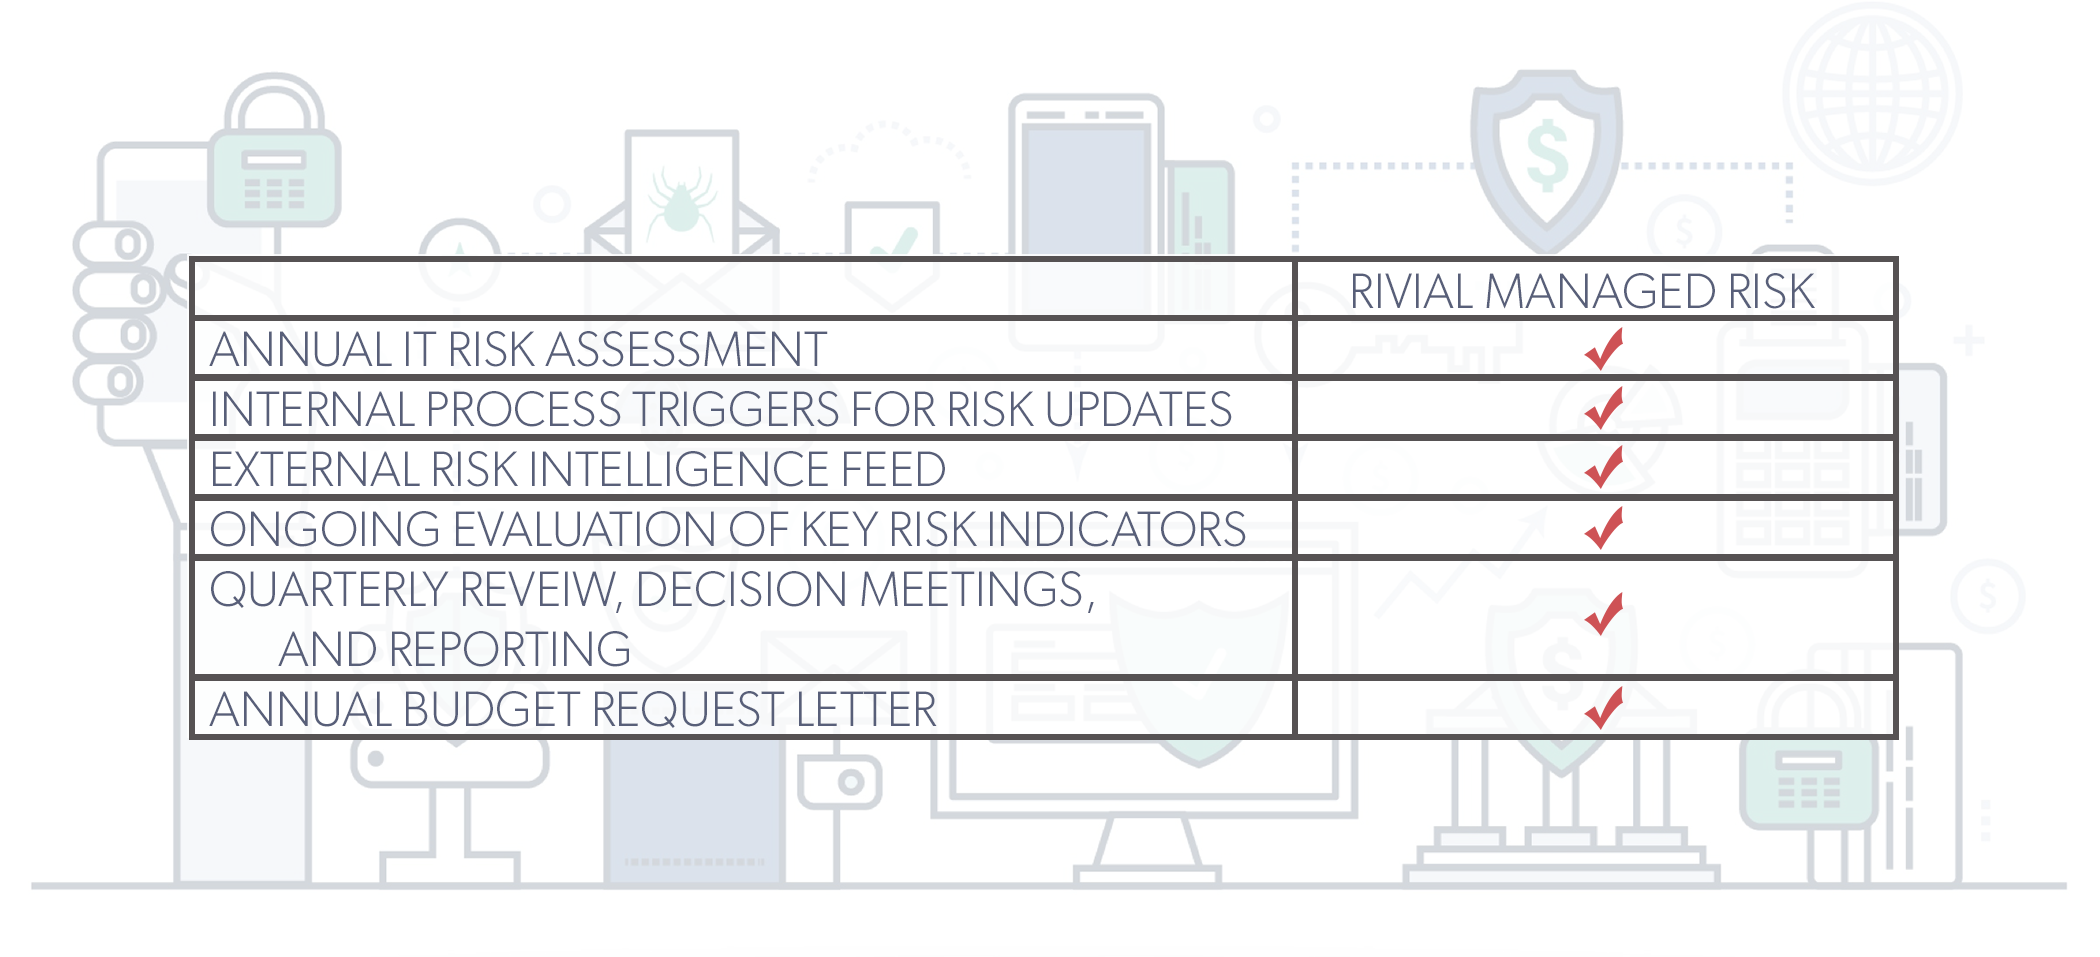 Checklist of Rivial Security's Managed Risk Assessment